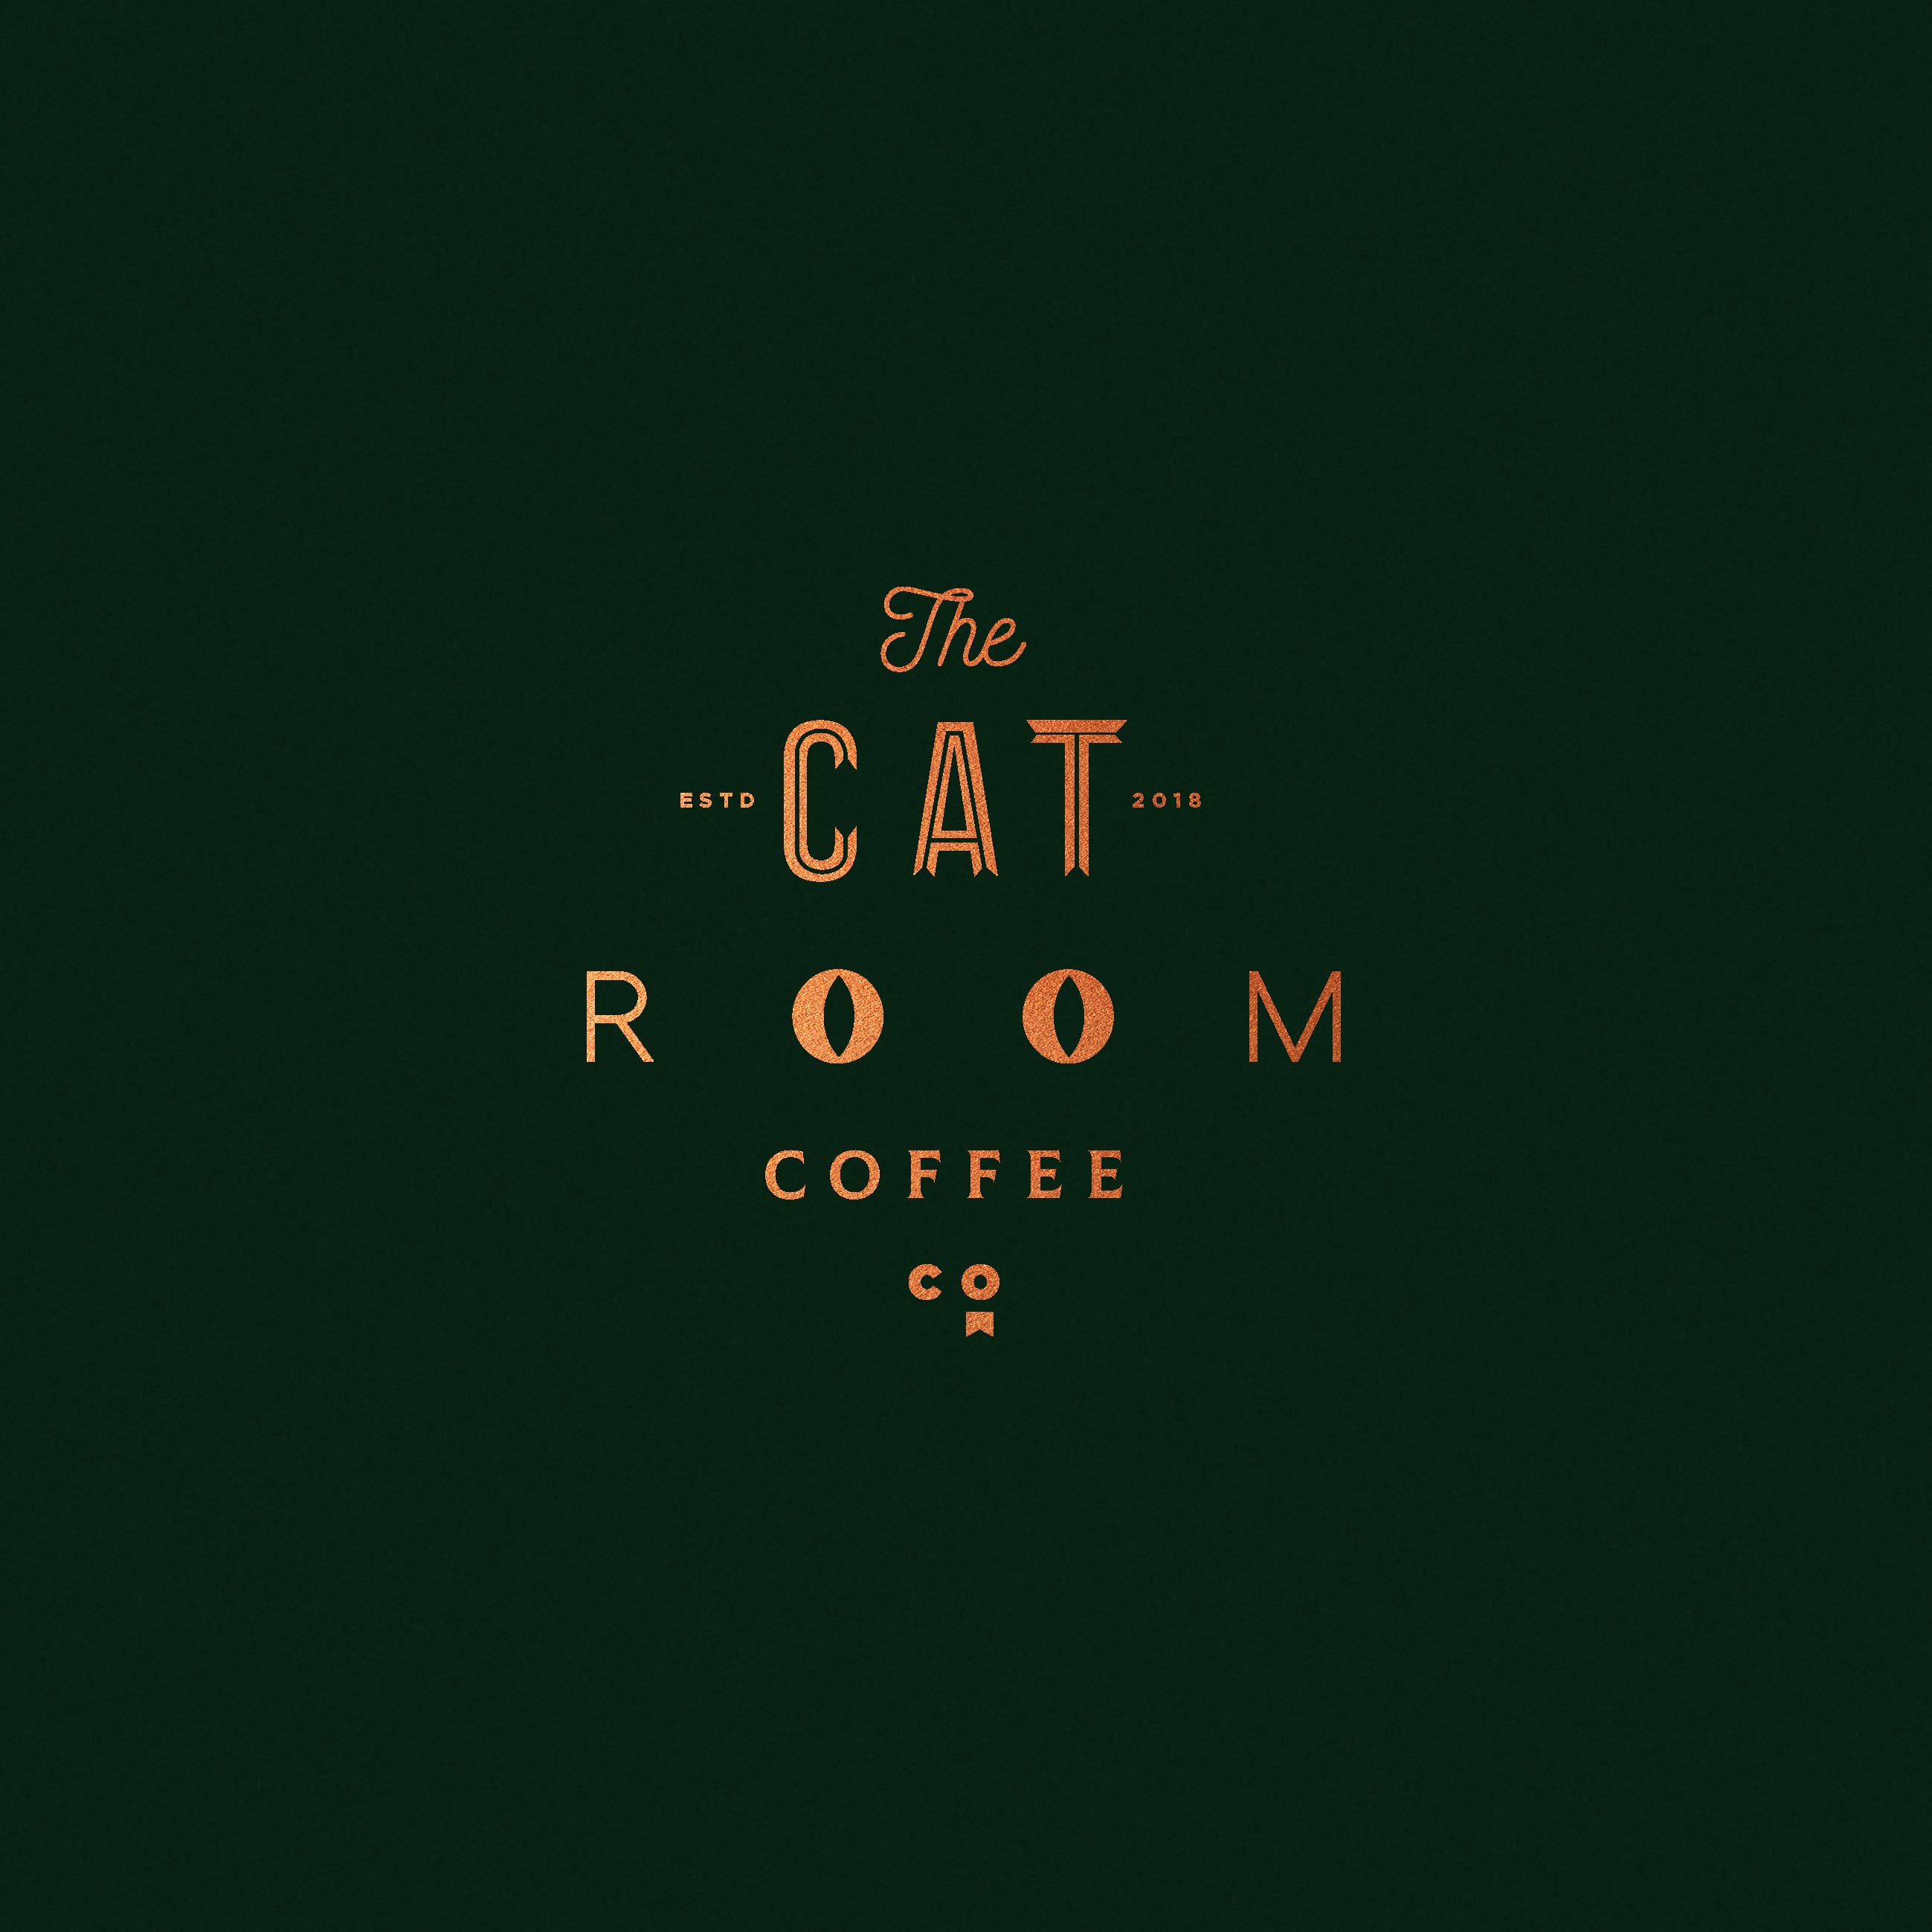 Jorge Campozano Designed a New Brand of Coffee Shop